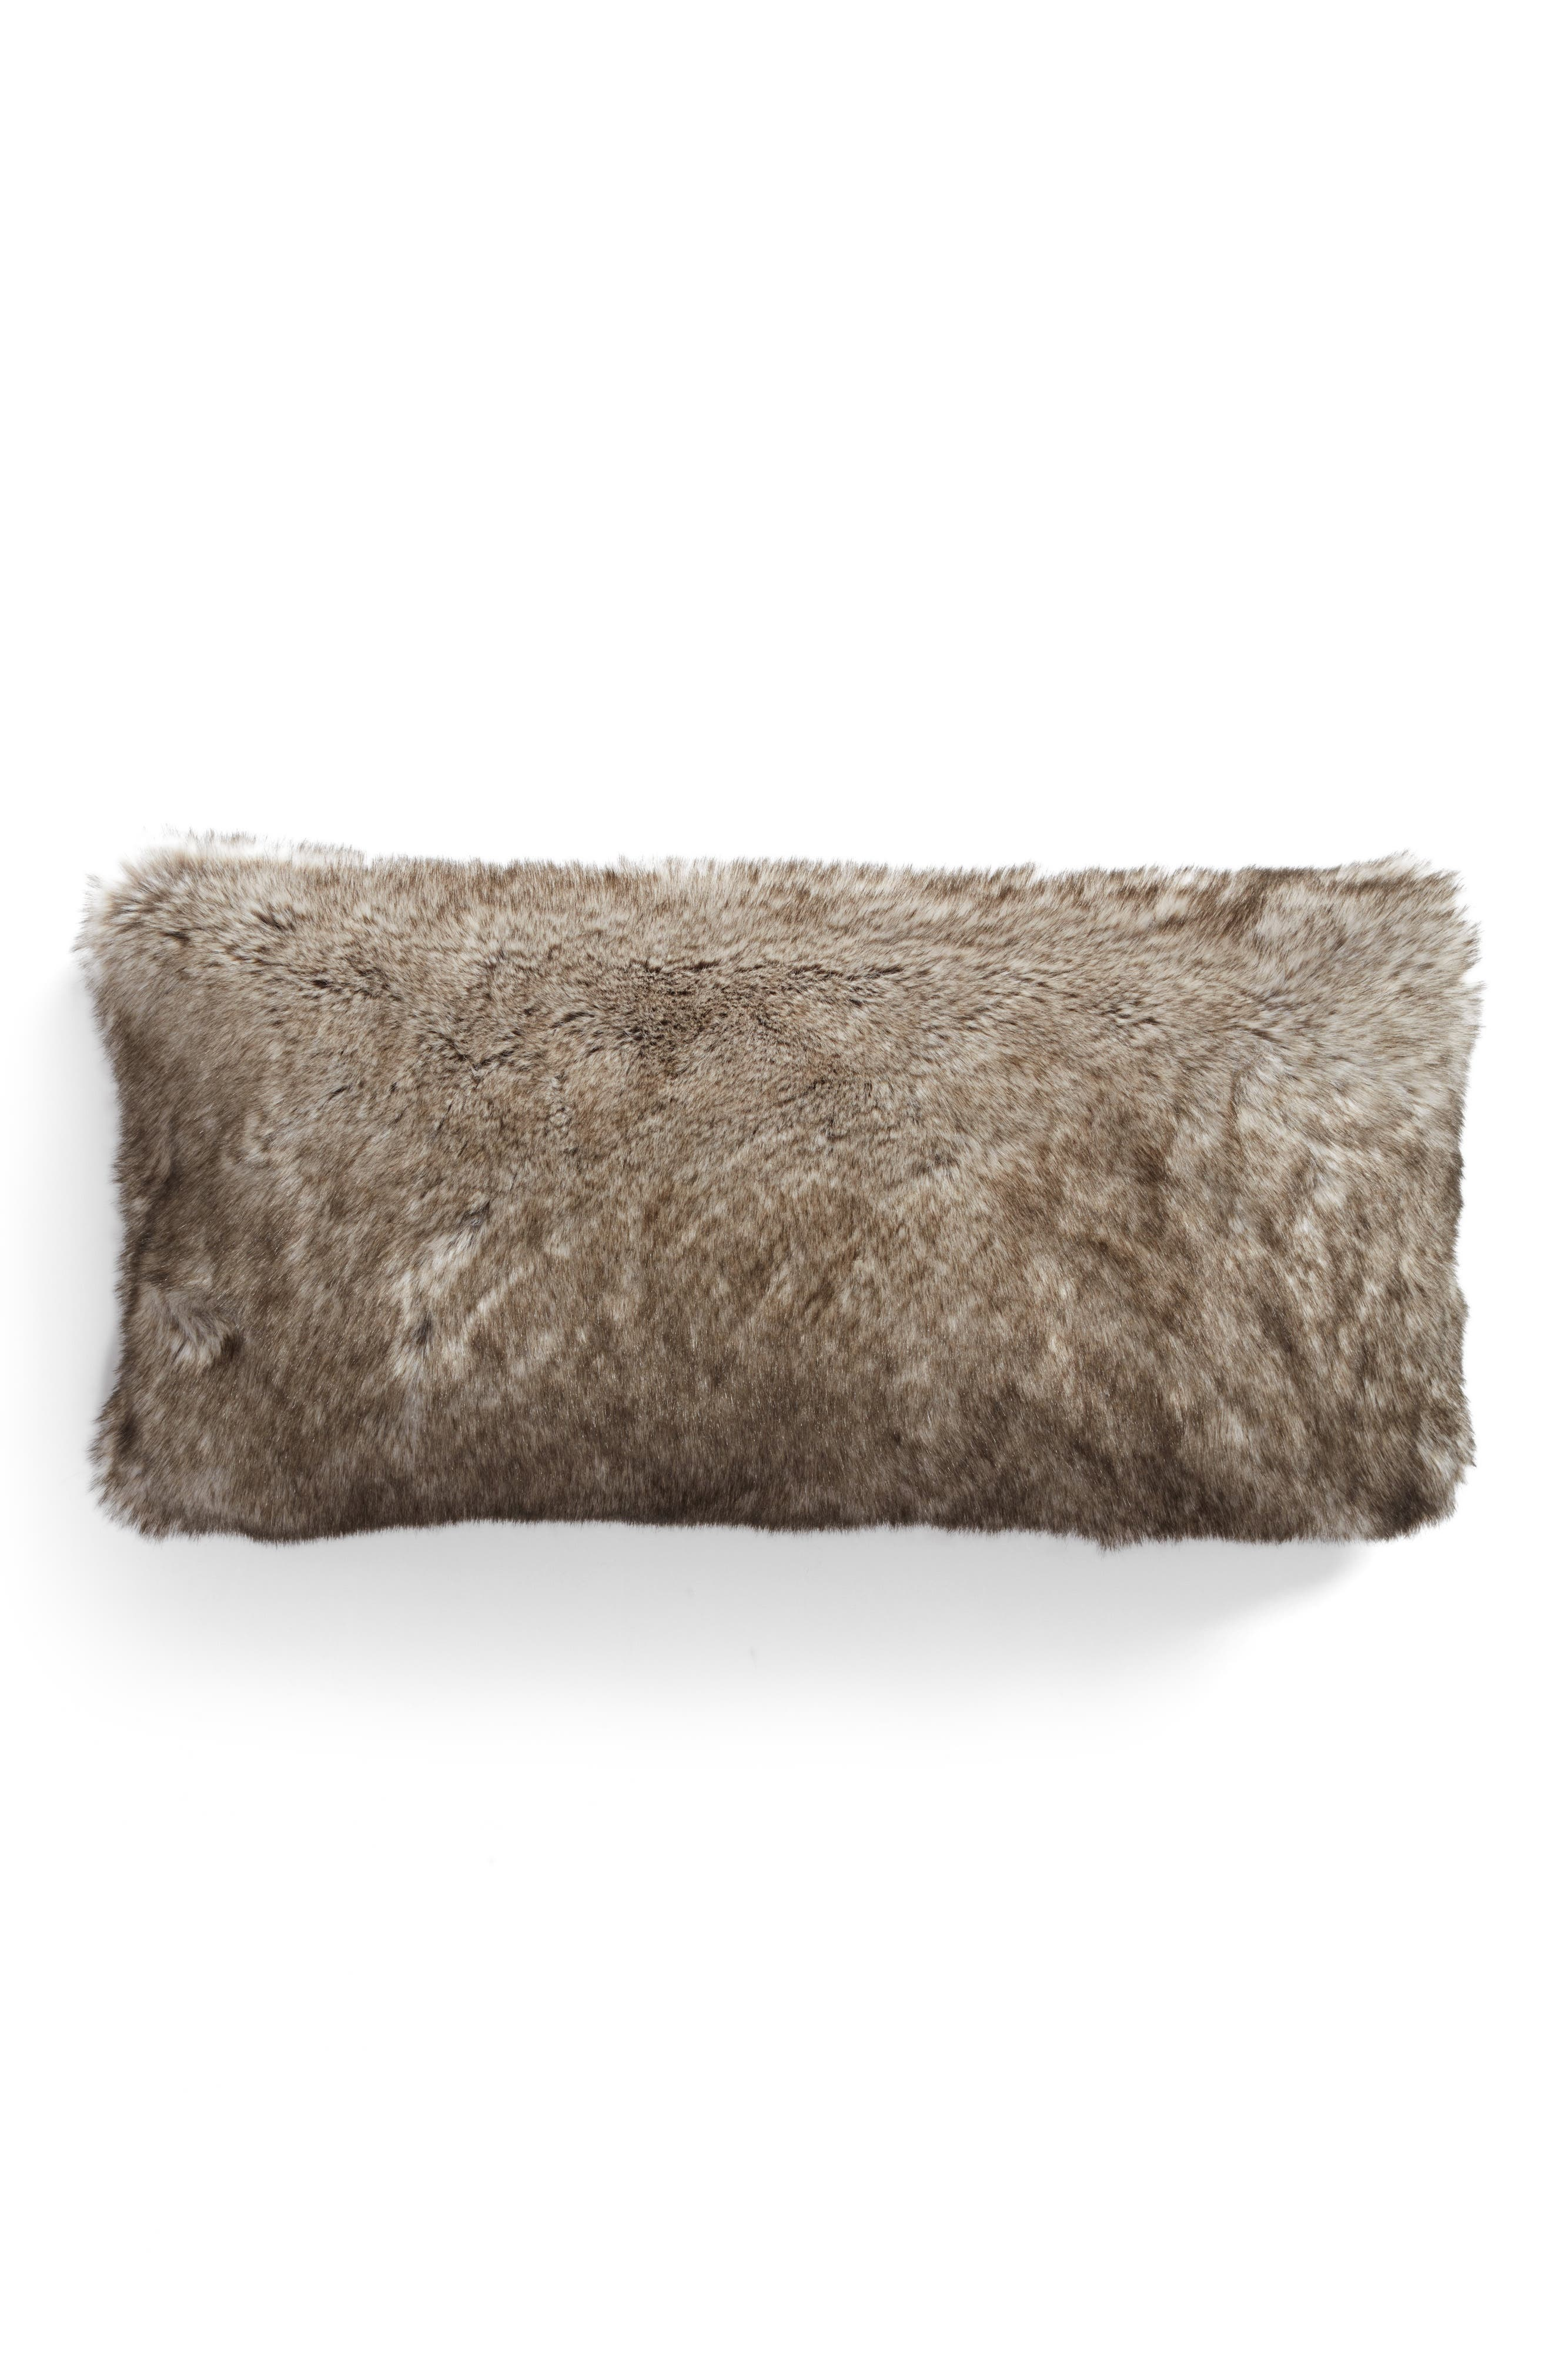 Alternate Image 1 Selected - Nordstrom at Home Cuddle Up Faux Fur Accent Pillow